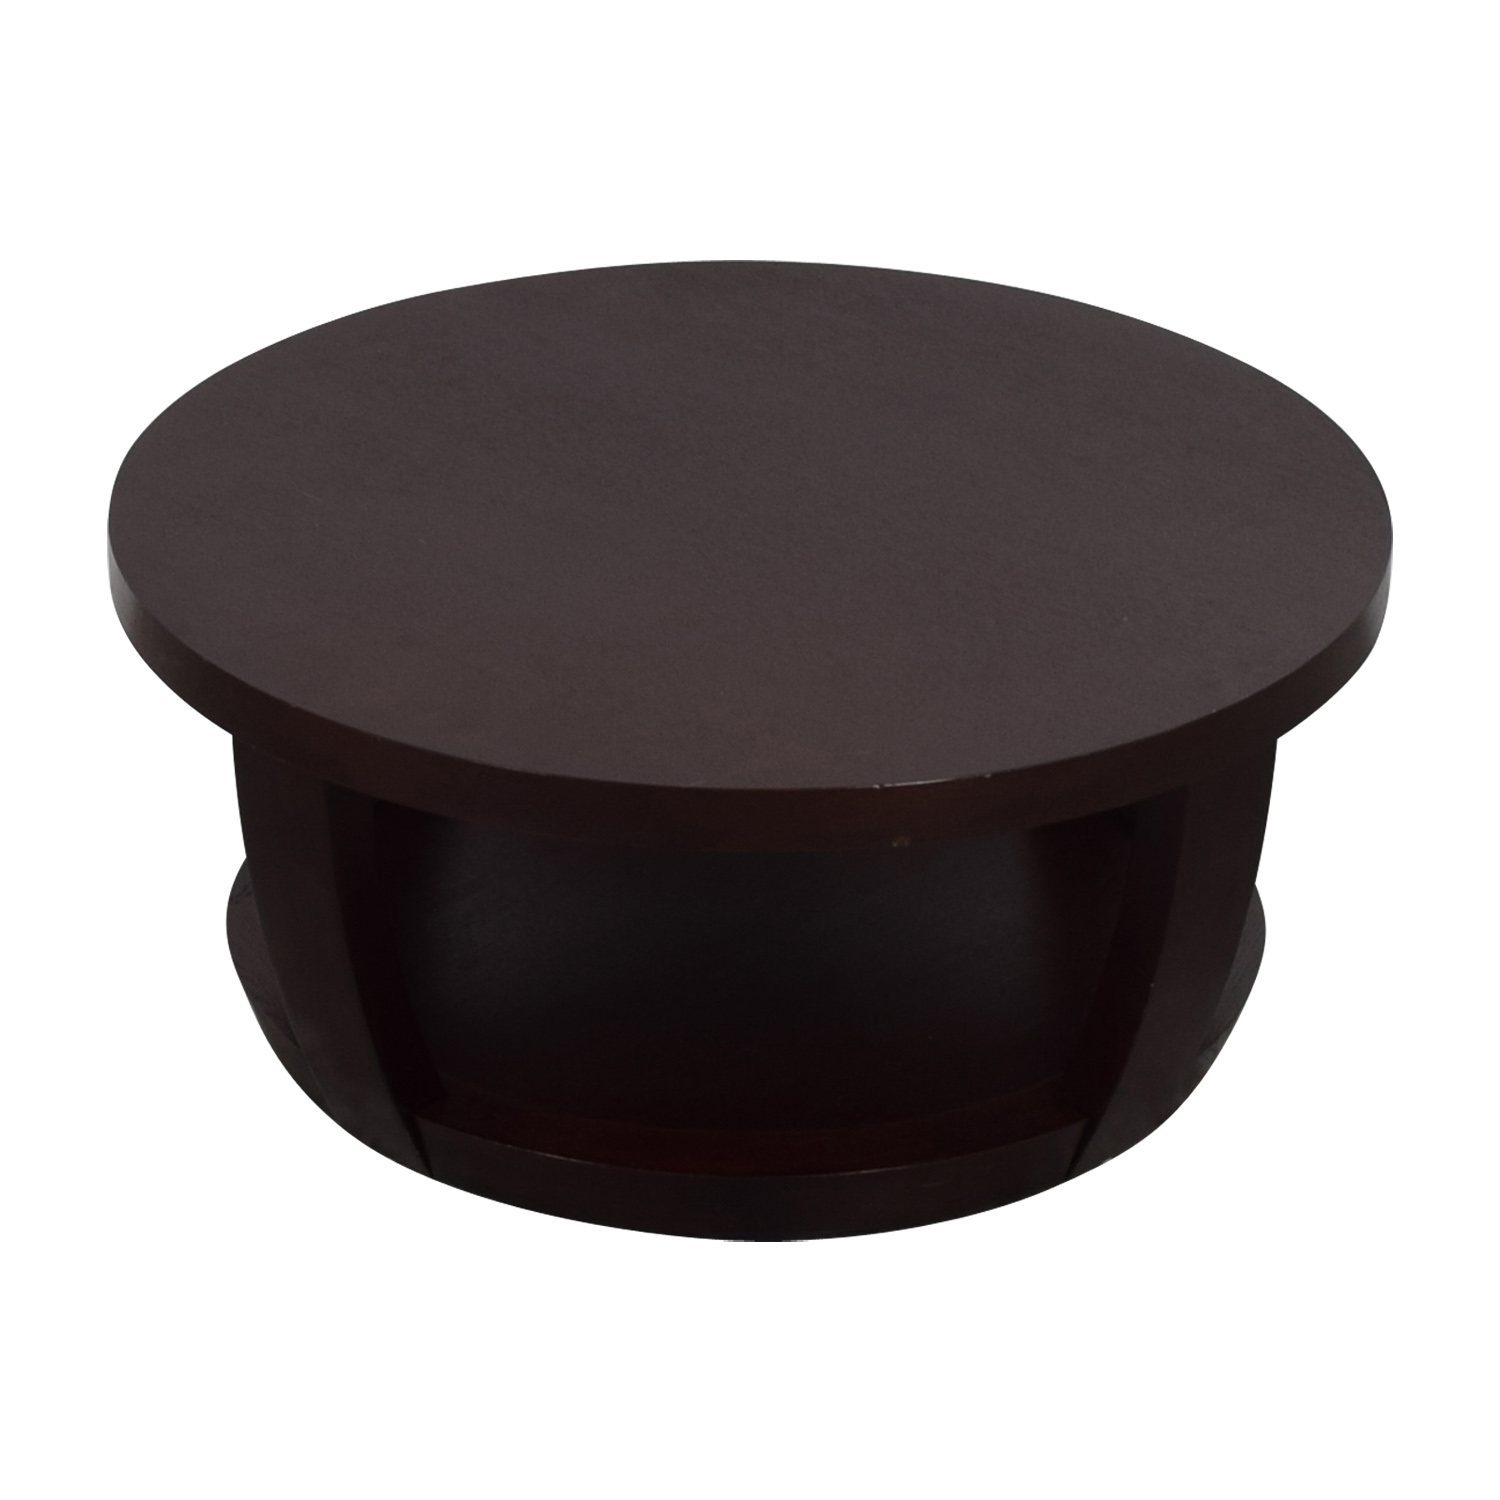 Macy's Round Wood Coffee Table sale